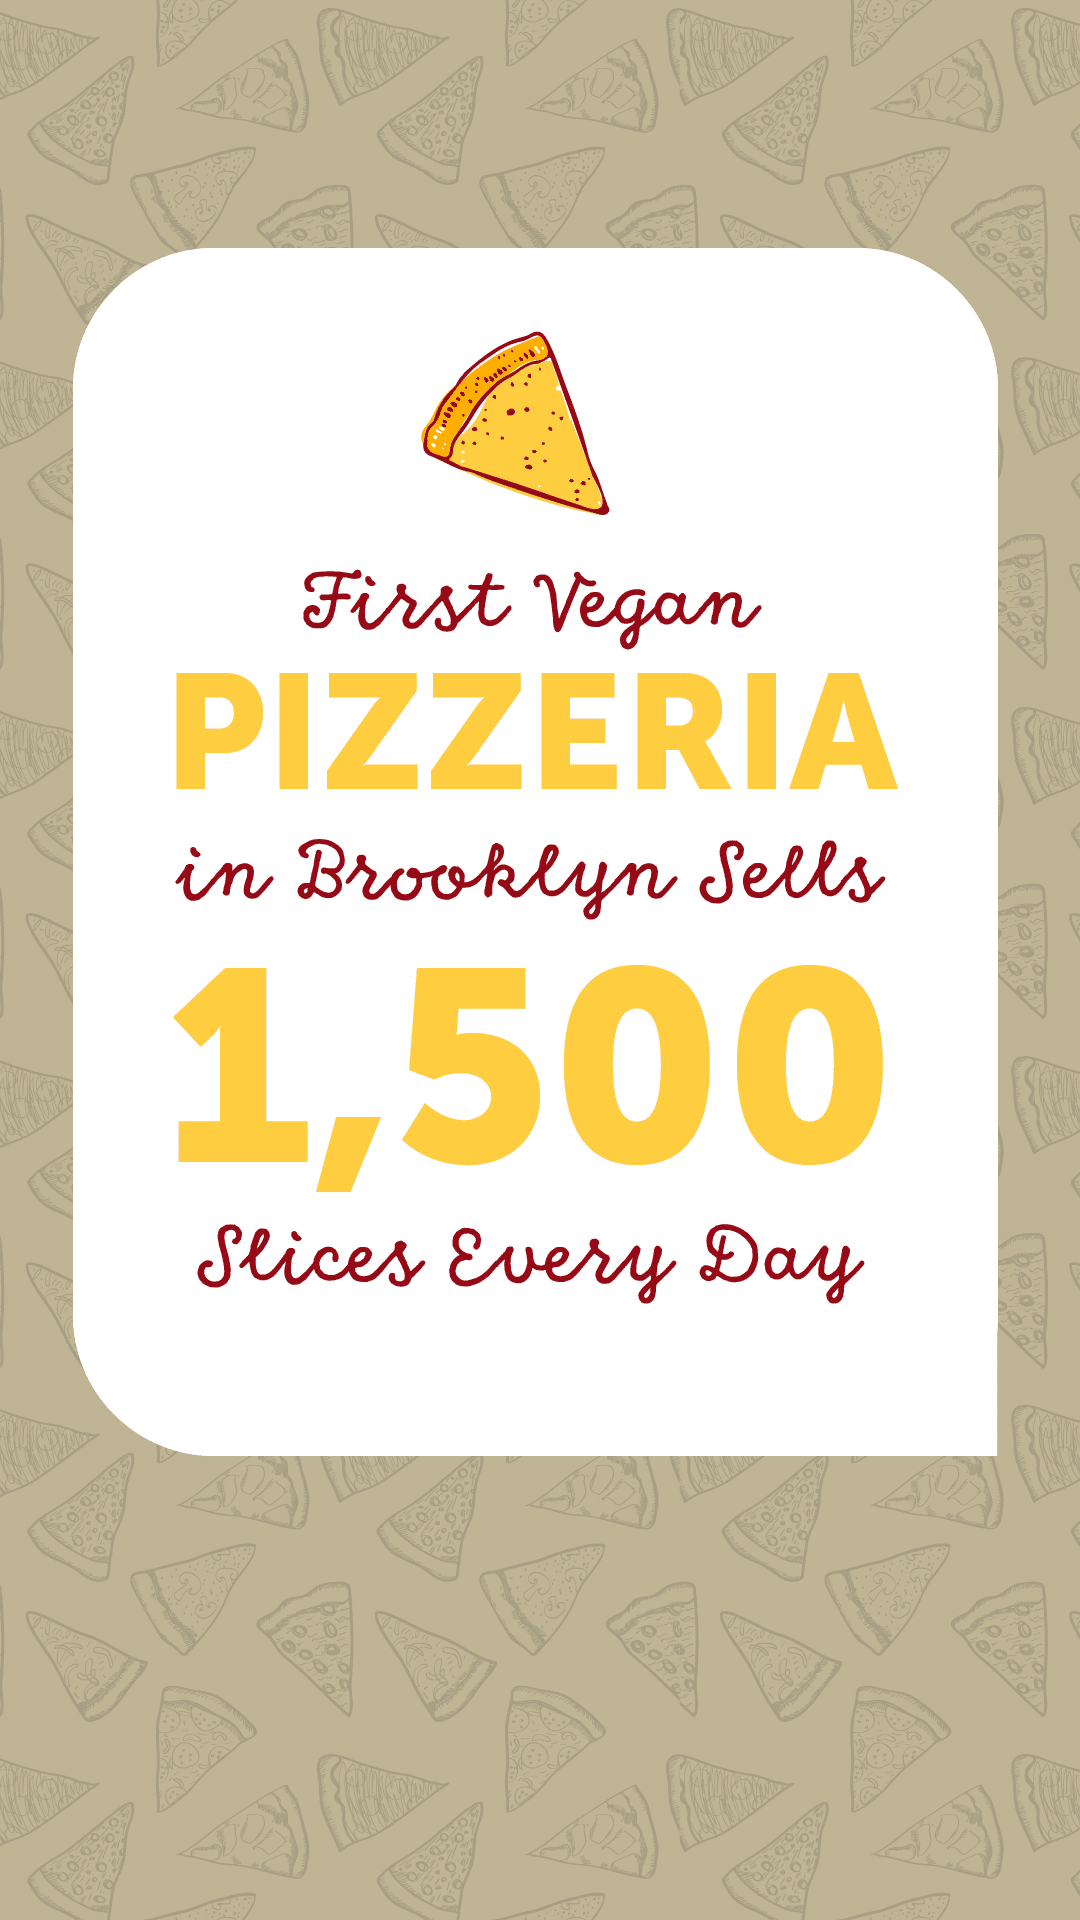 First Vegan Pizzeria in Brooklyn Sells 1,500 Slices Every Day